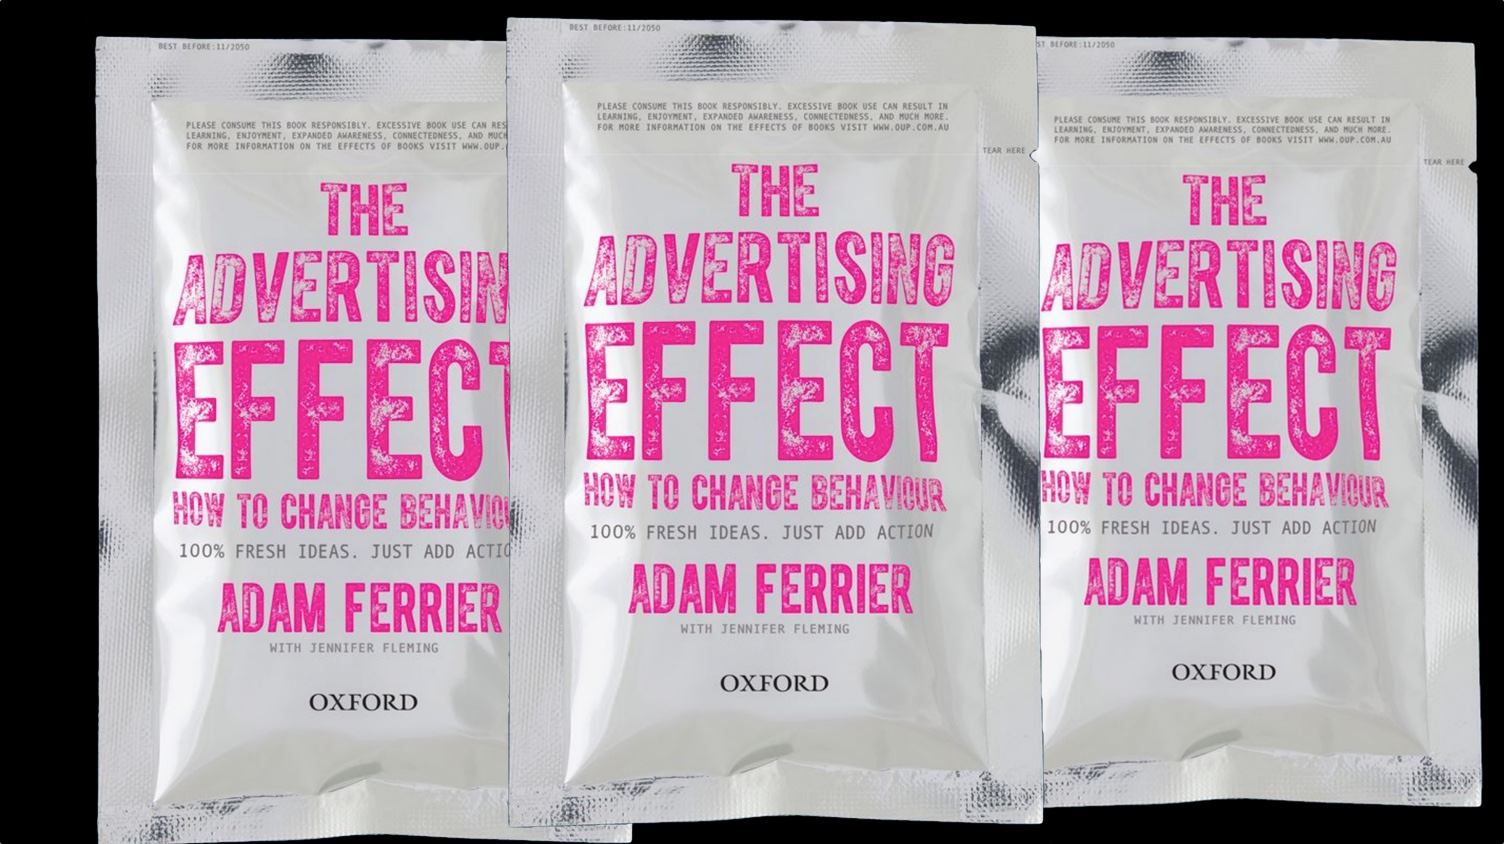 The 10 Advertising Strategies That Work [The Advertising Effect ...